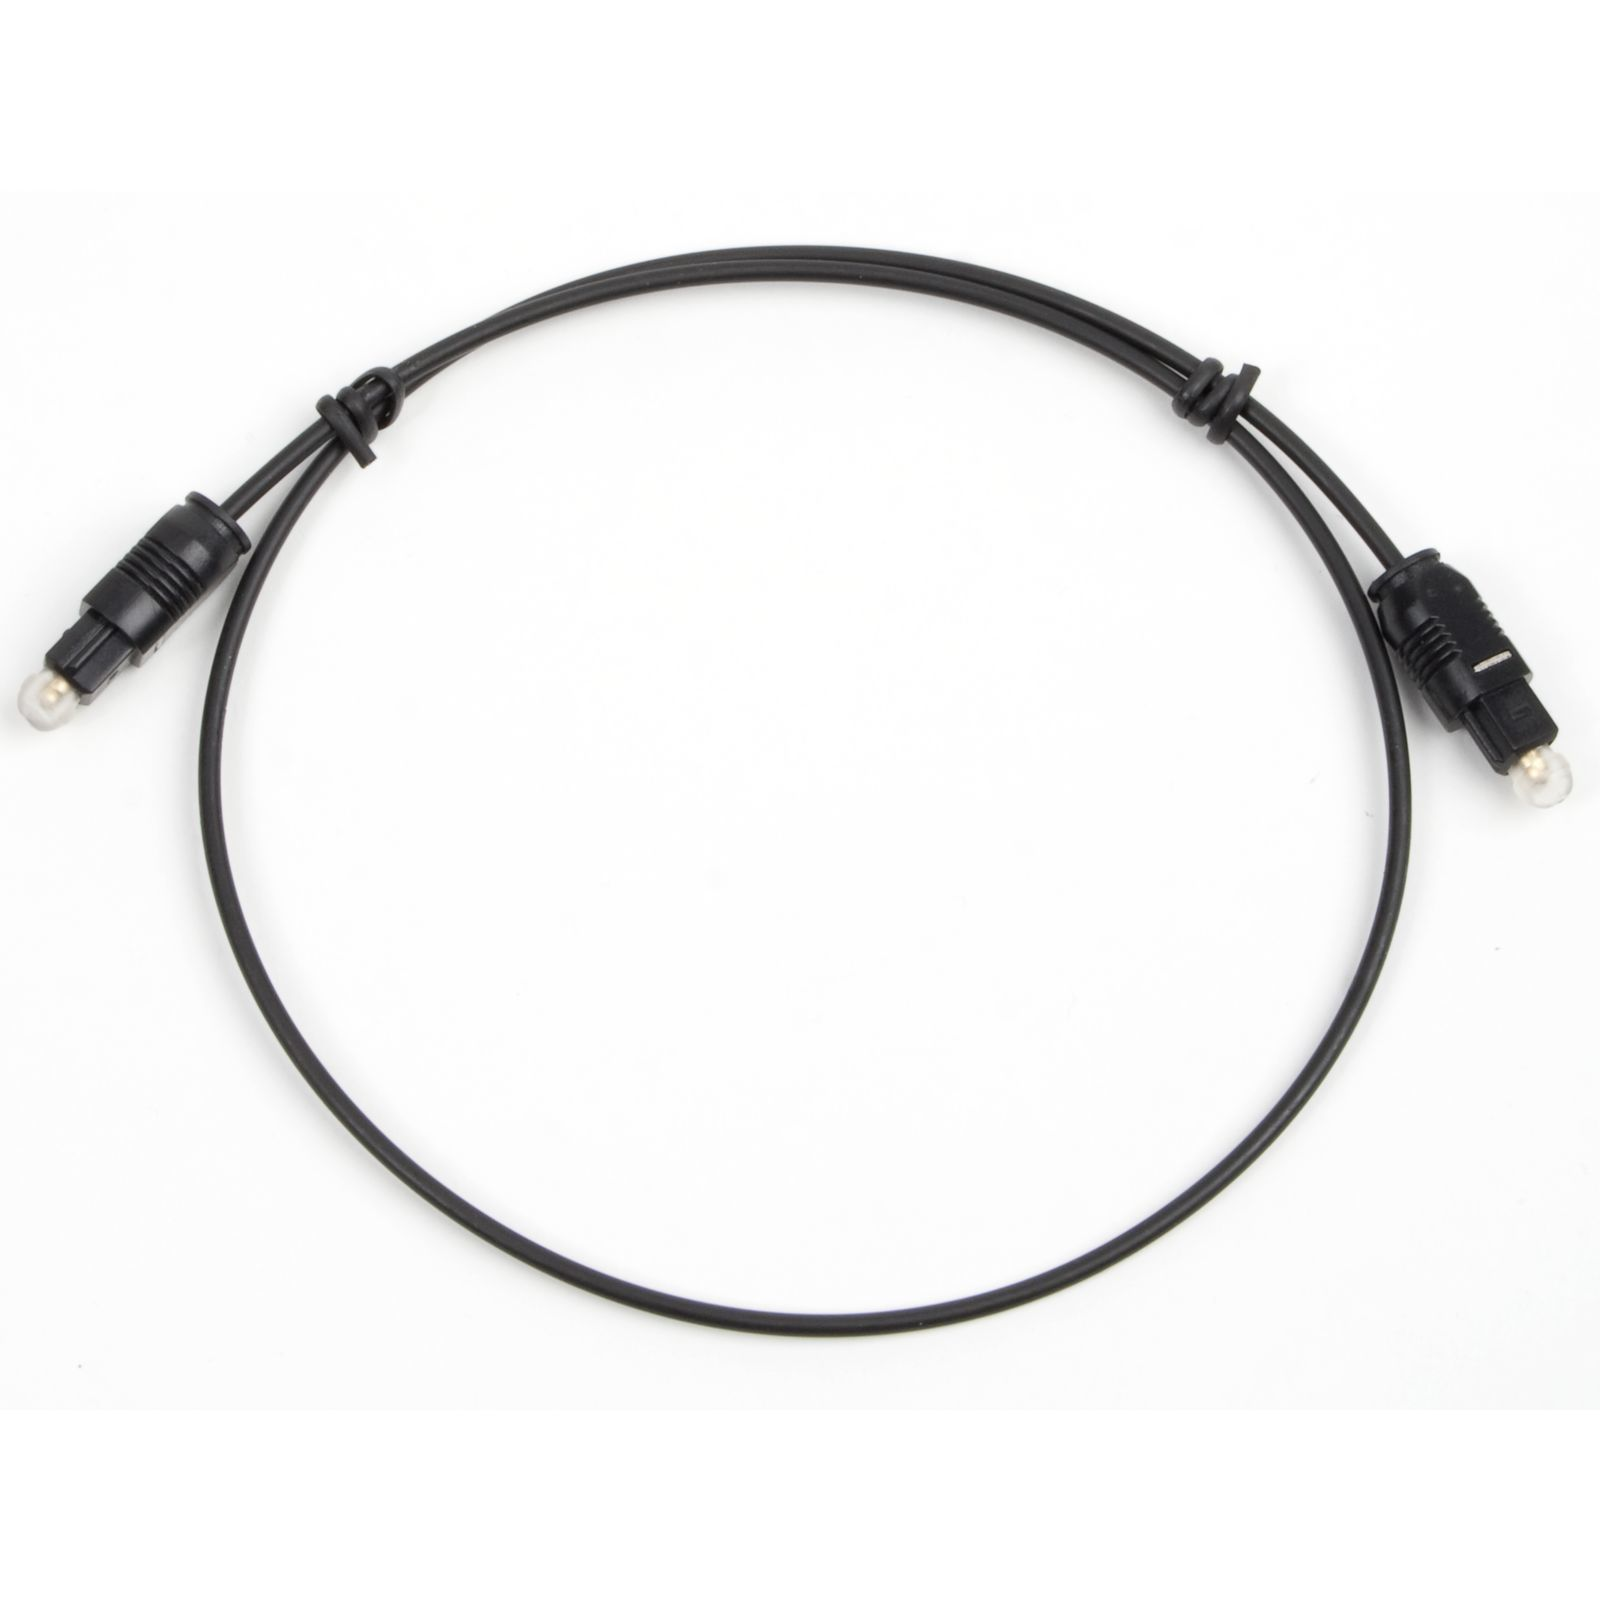 MUSIC STORE MTO 0.5 TT-1 optical Cable Toslink, 0,5m Produktbillede